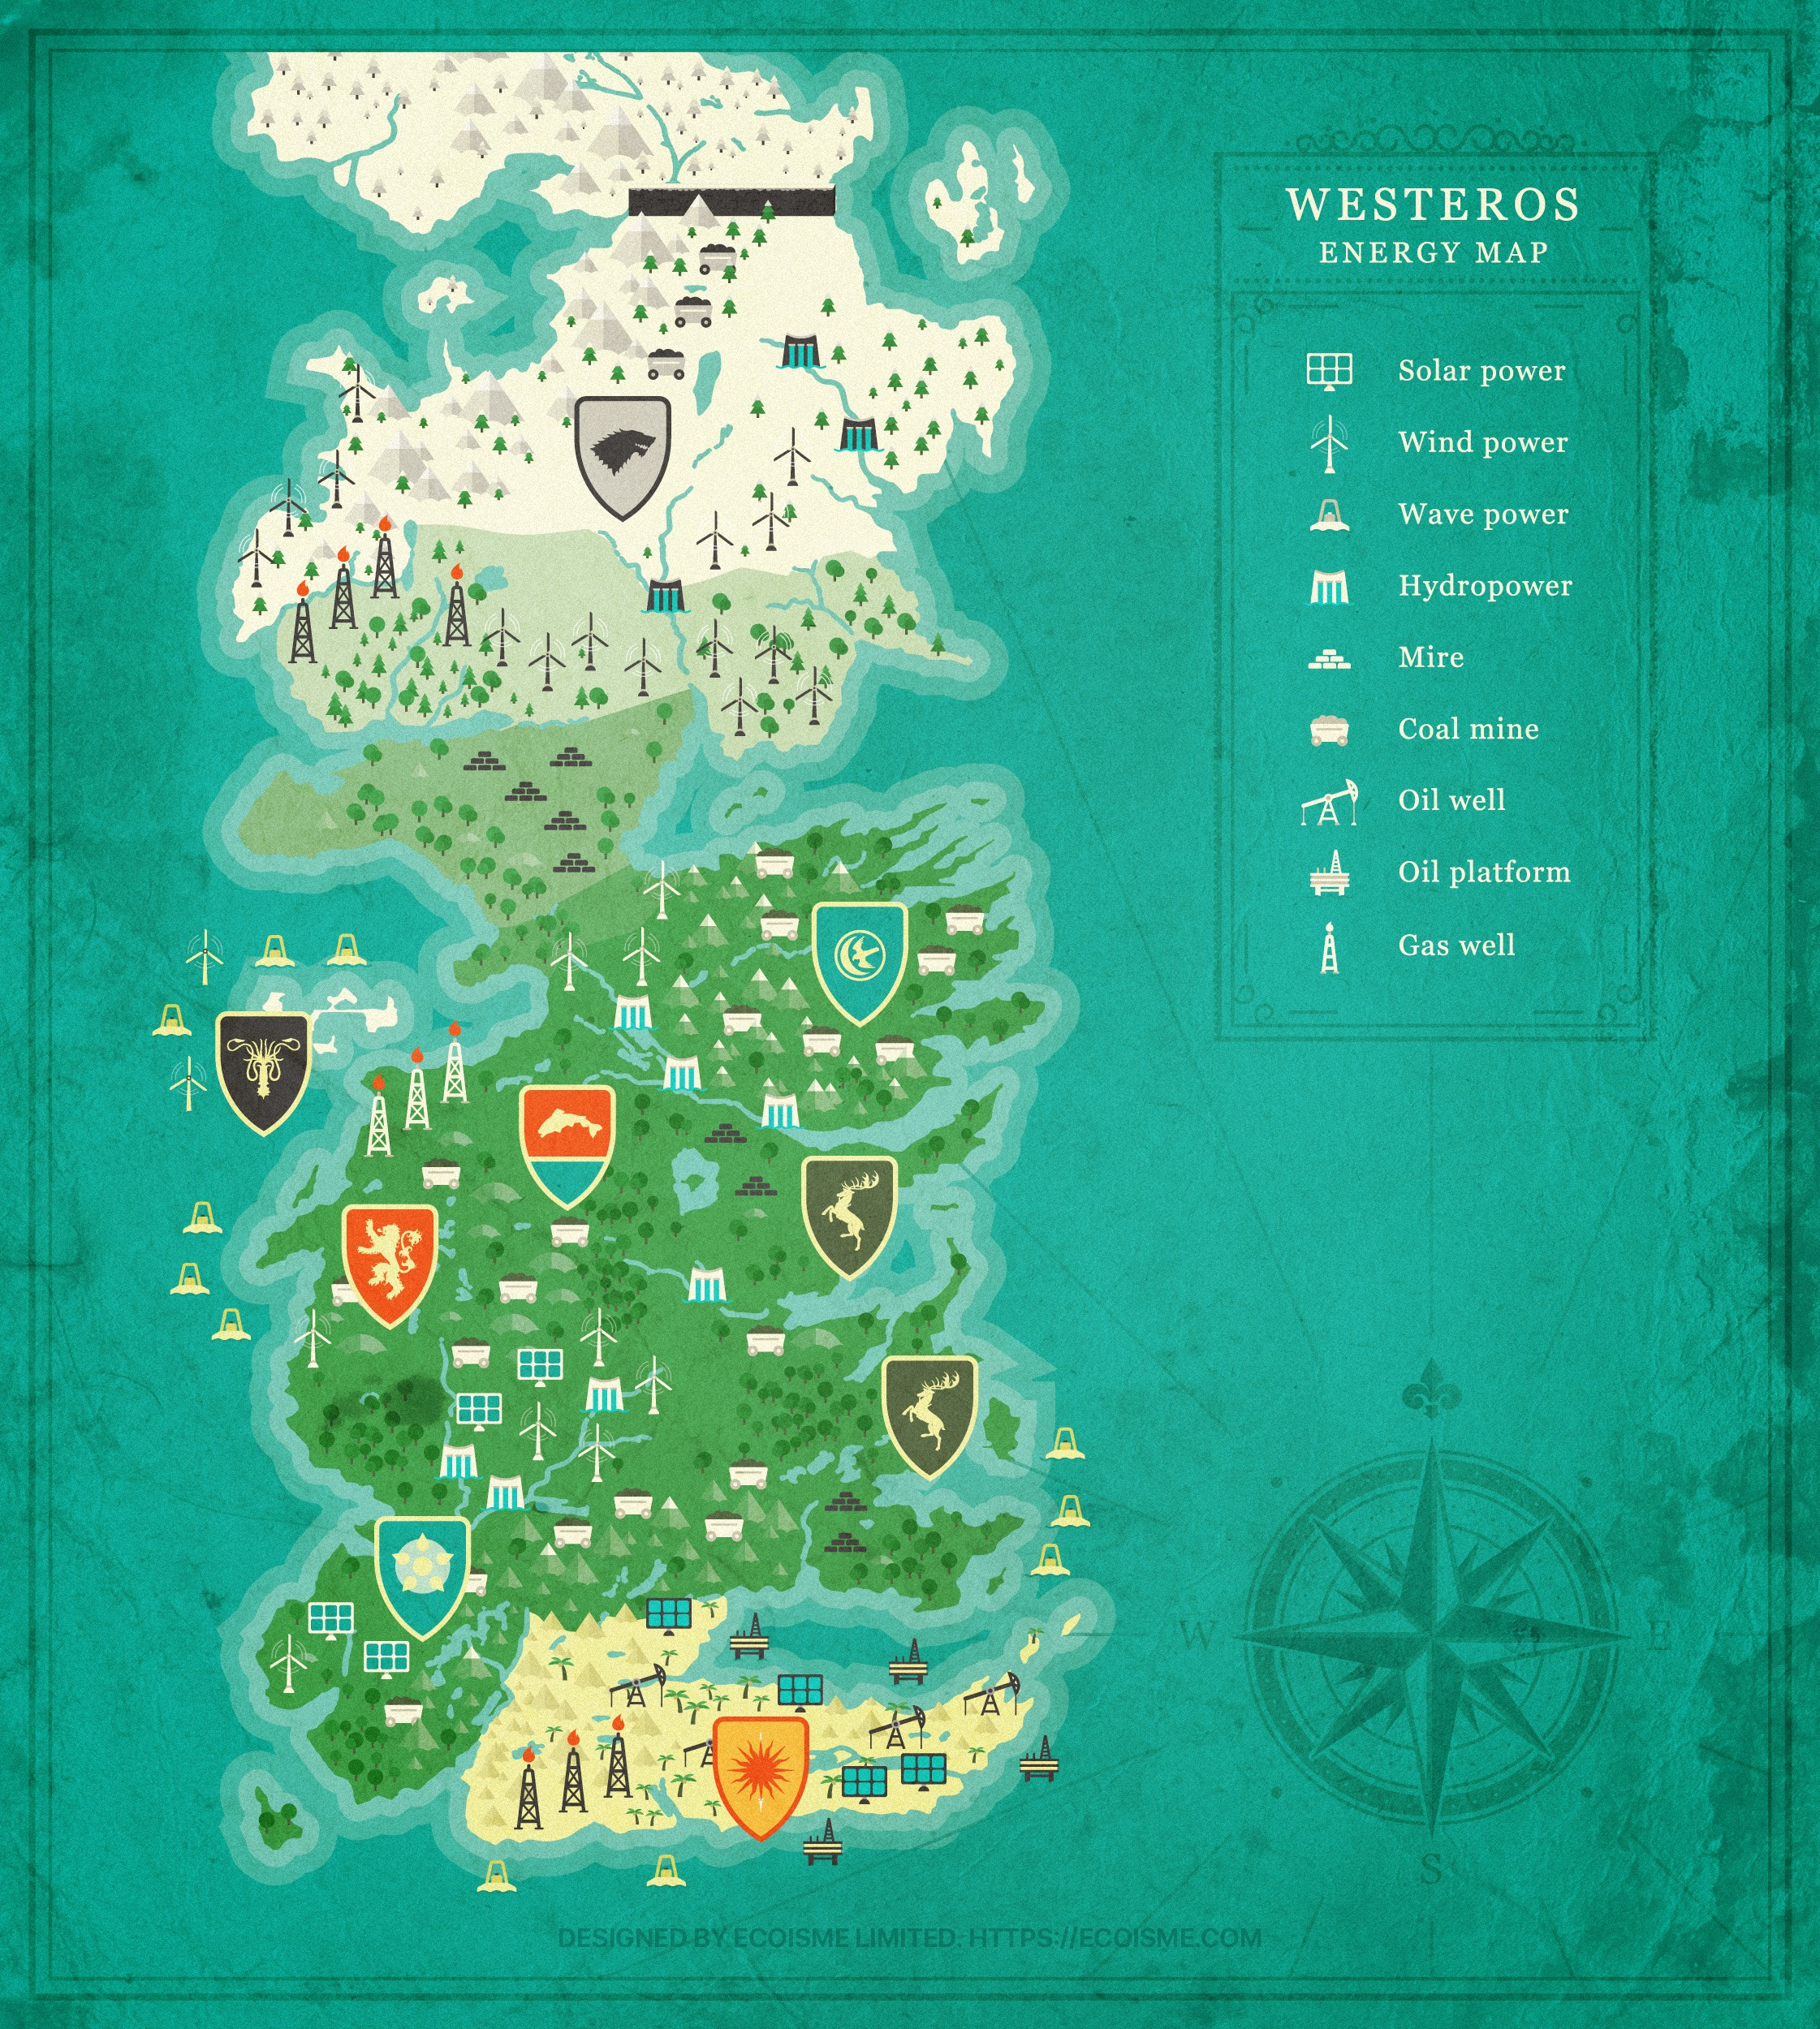 Energy Map Of Game Of Thrones World Shows Who Is The Strongest By Anton Diatlov Ecoisme Blog Medium